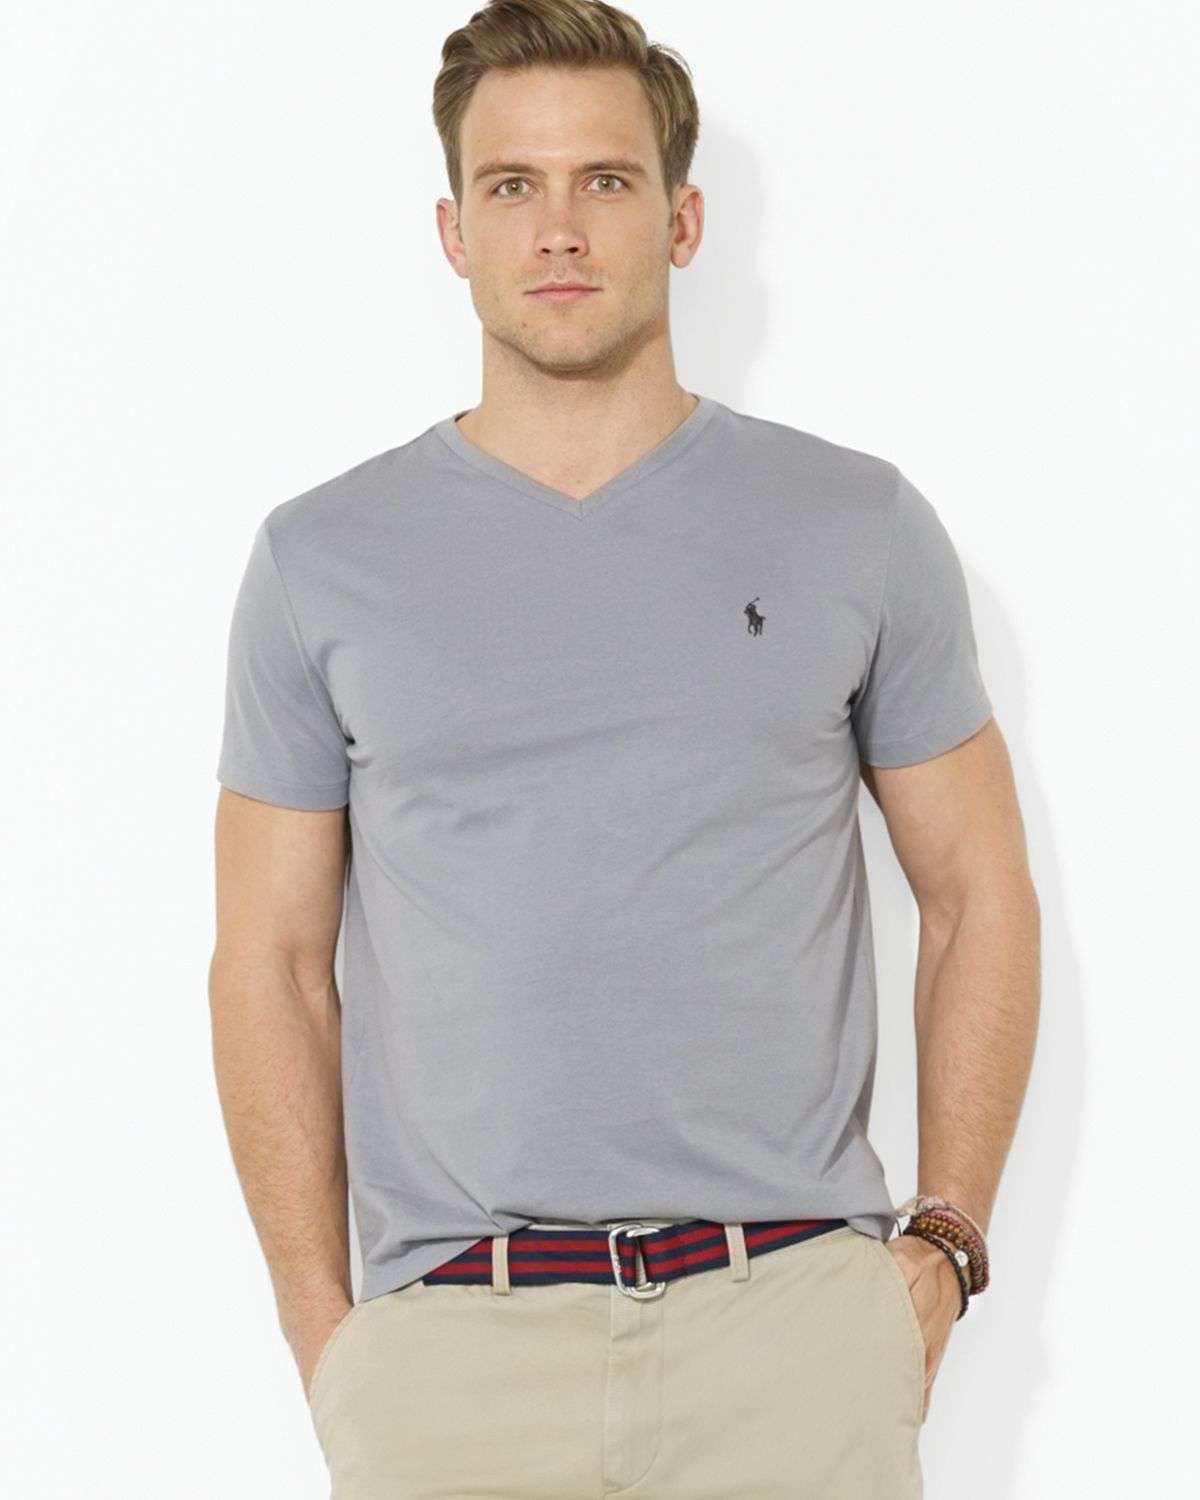 polo ralph lauren short sleeve cotton jersey v neck tee in gray for men lyst. Black Bedroom Furniture Sets. Home Design Ideas